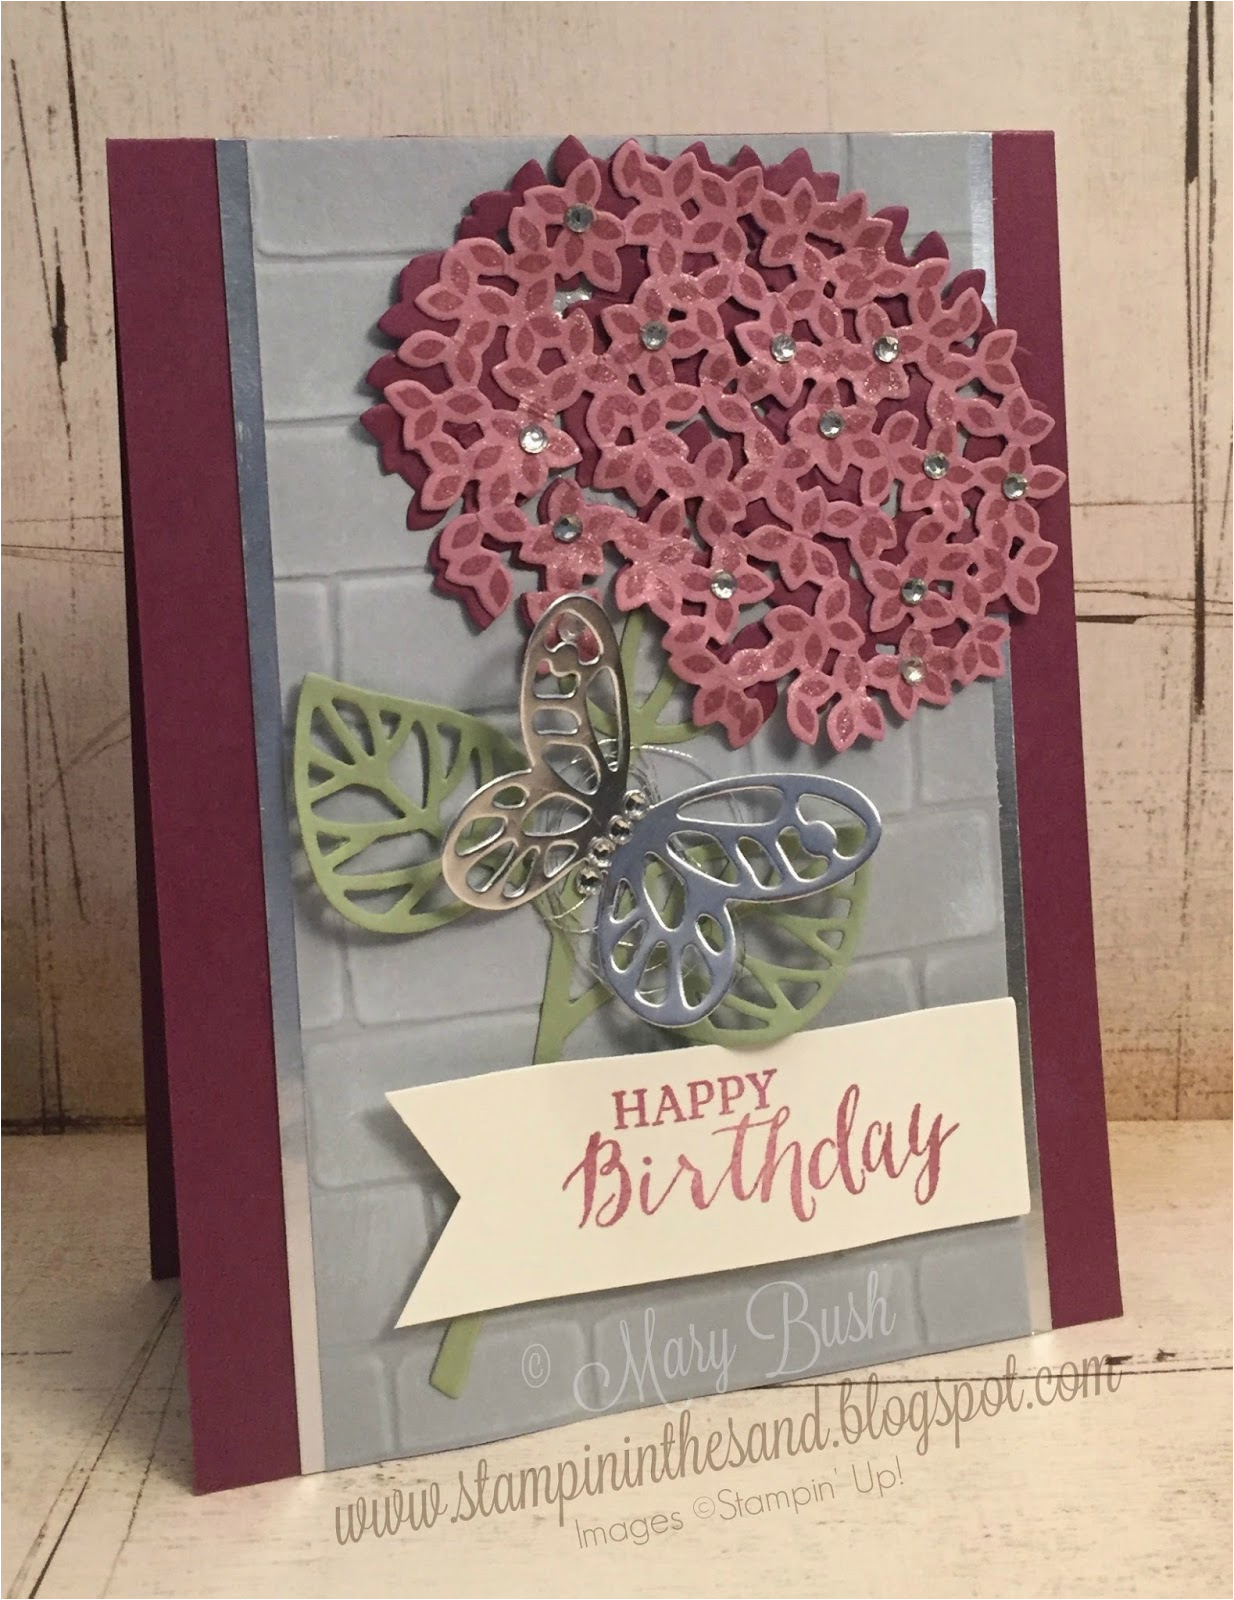 Thoughtful Birthday Cards Stampin 39 In the Sand Card thoughtful Branches Birthday